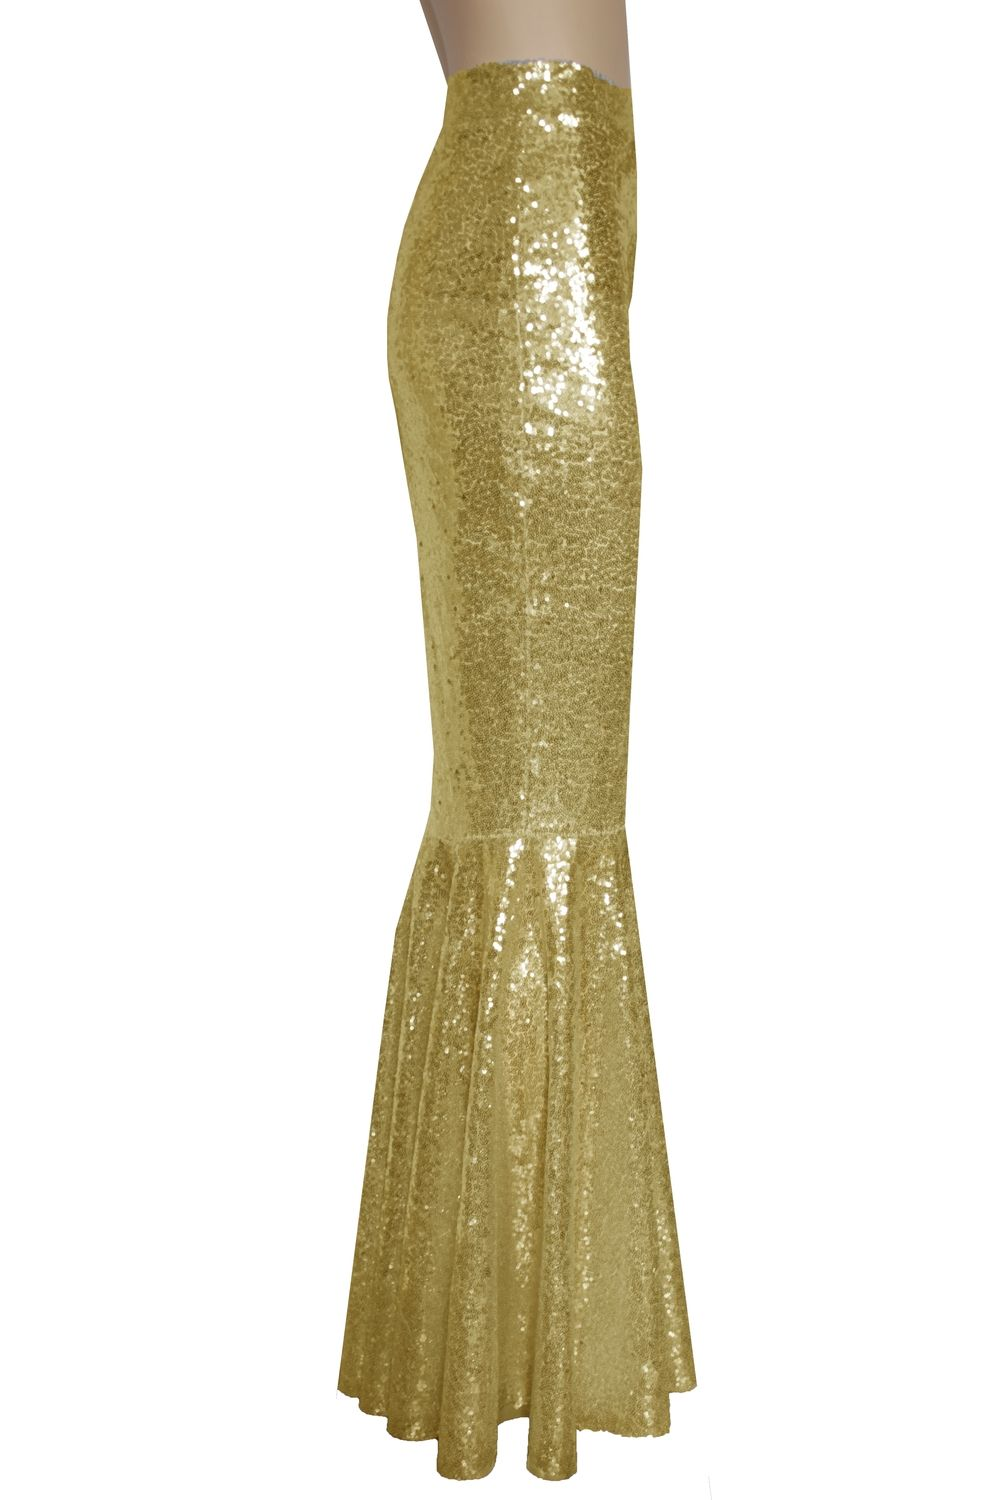 82e83bd78 Gold mermaid skirt. Sequin bridal separates. Mix and match bridesmaid skirt.  Plus size formal outfit.